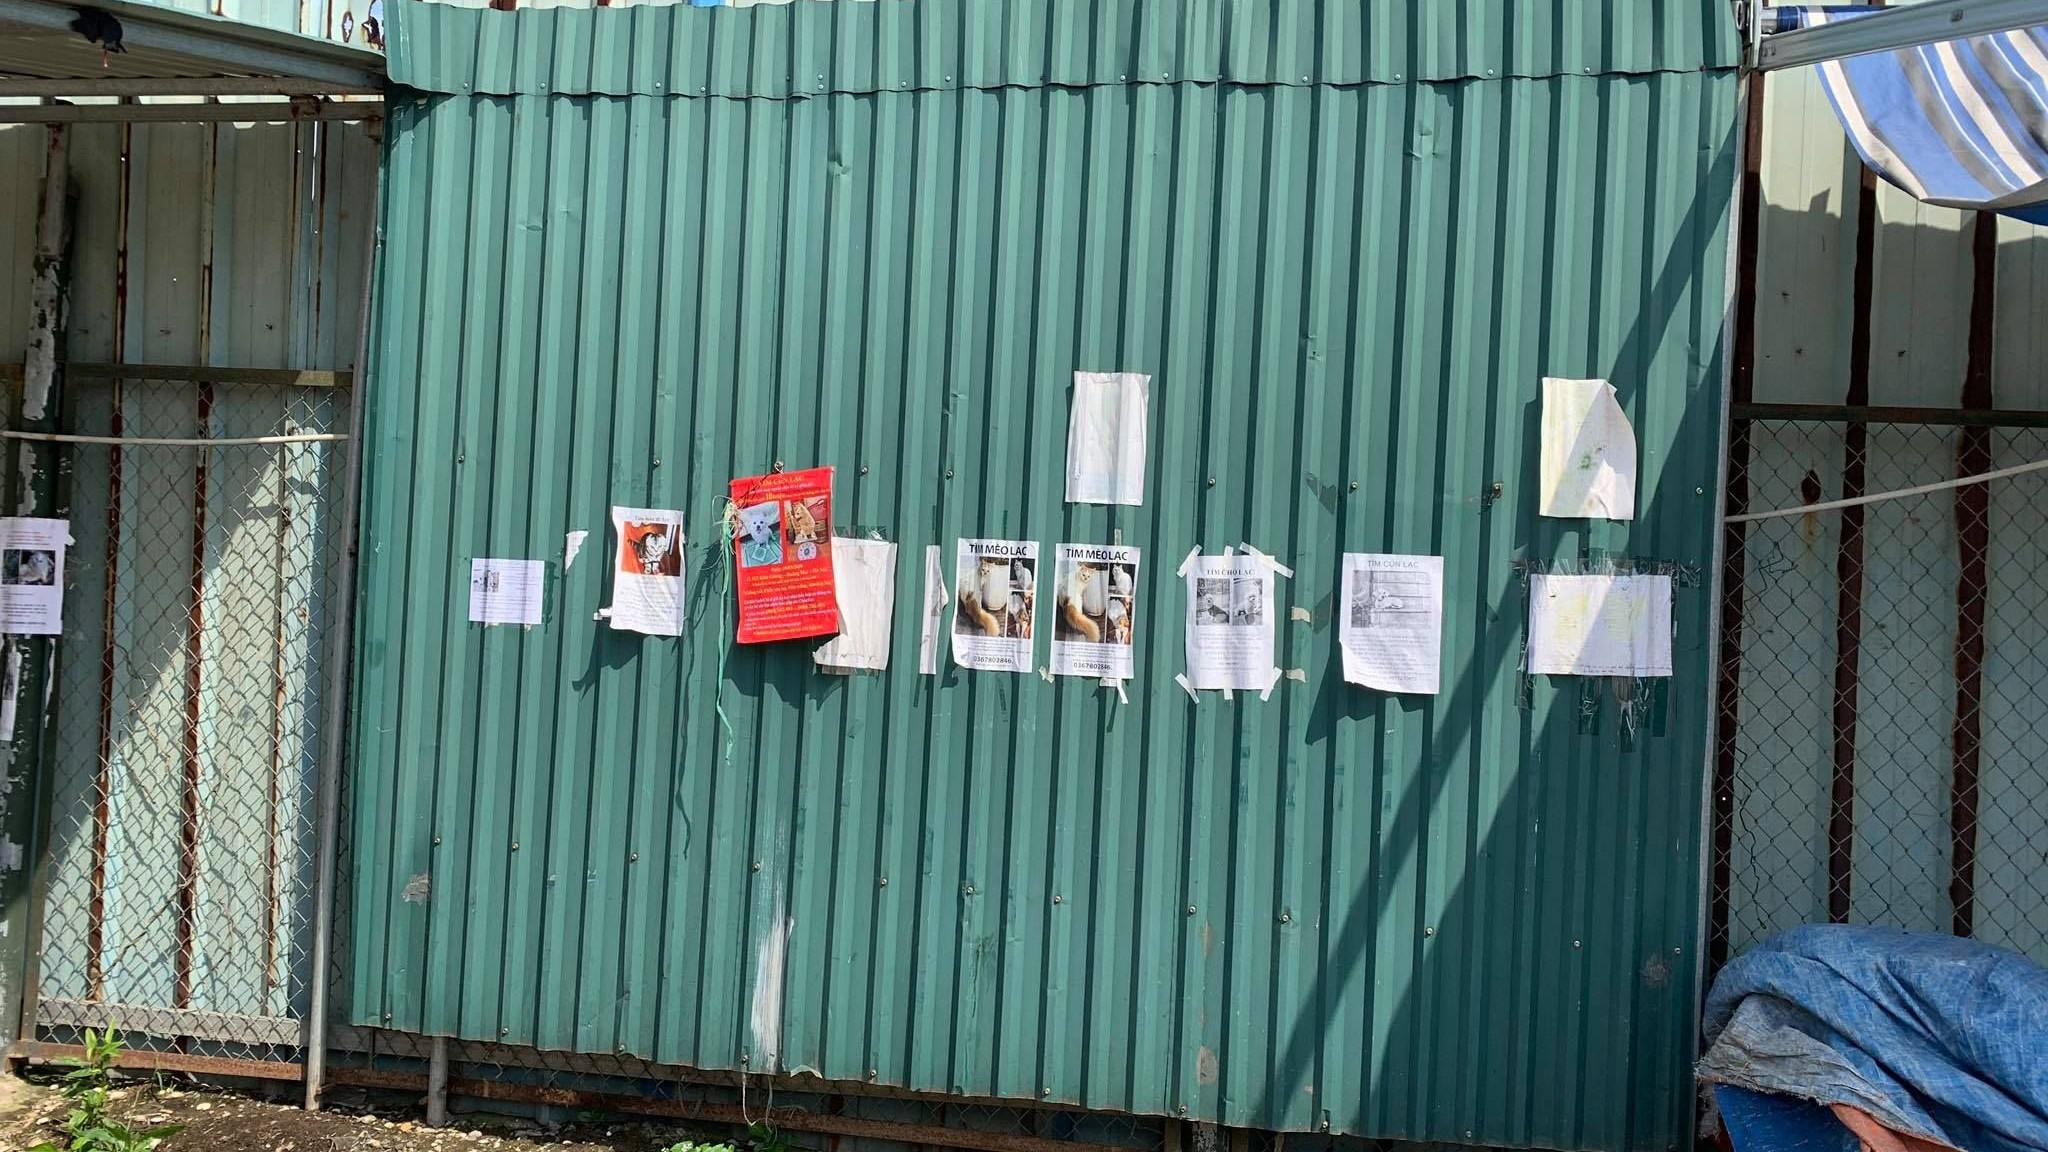 Posters of missing cats outside a dog and cat meat market in Vietnam